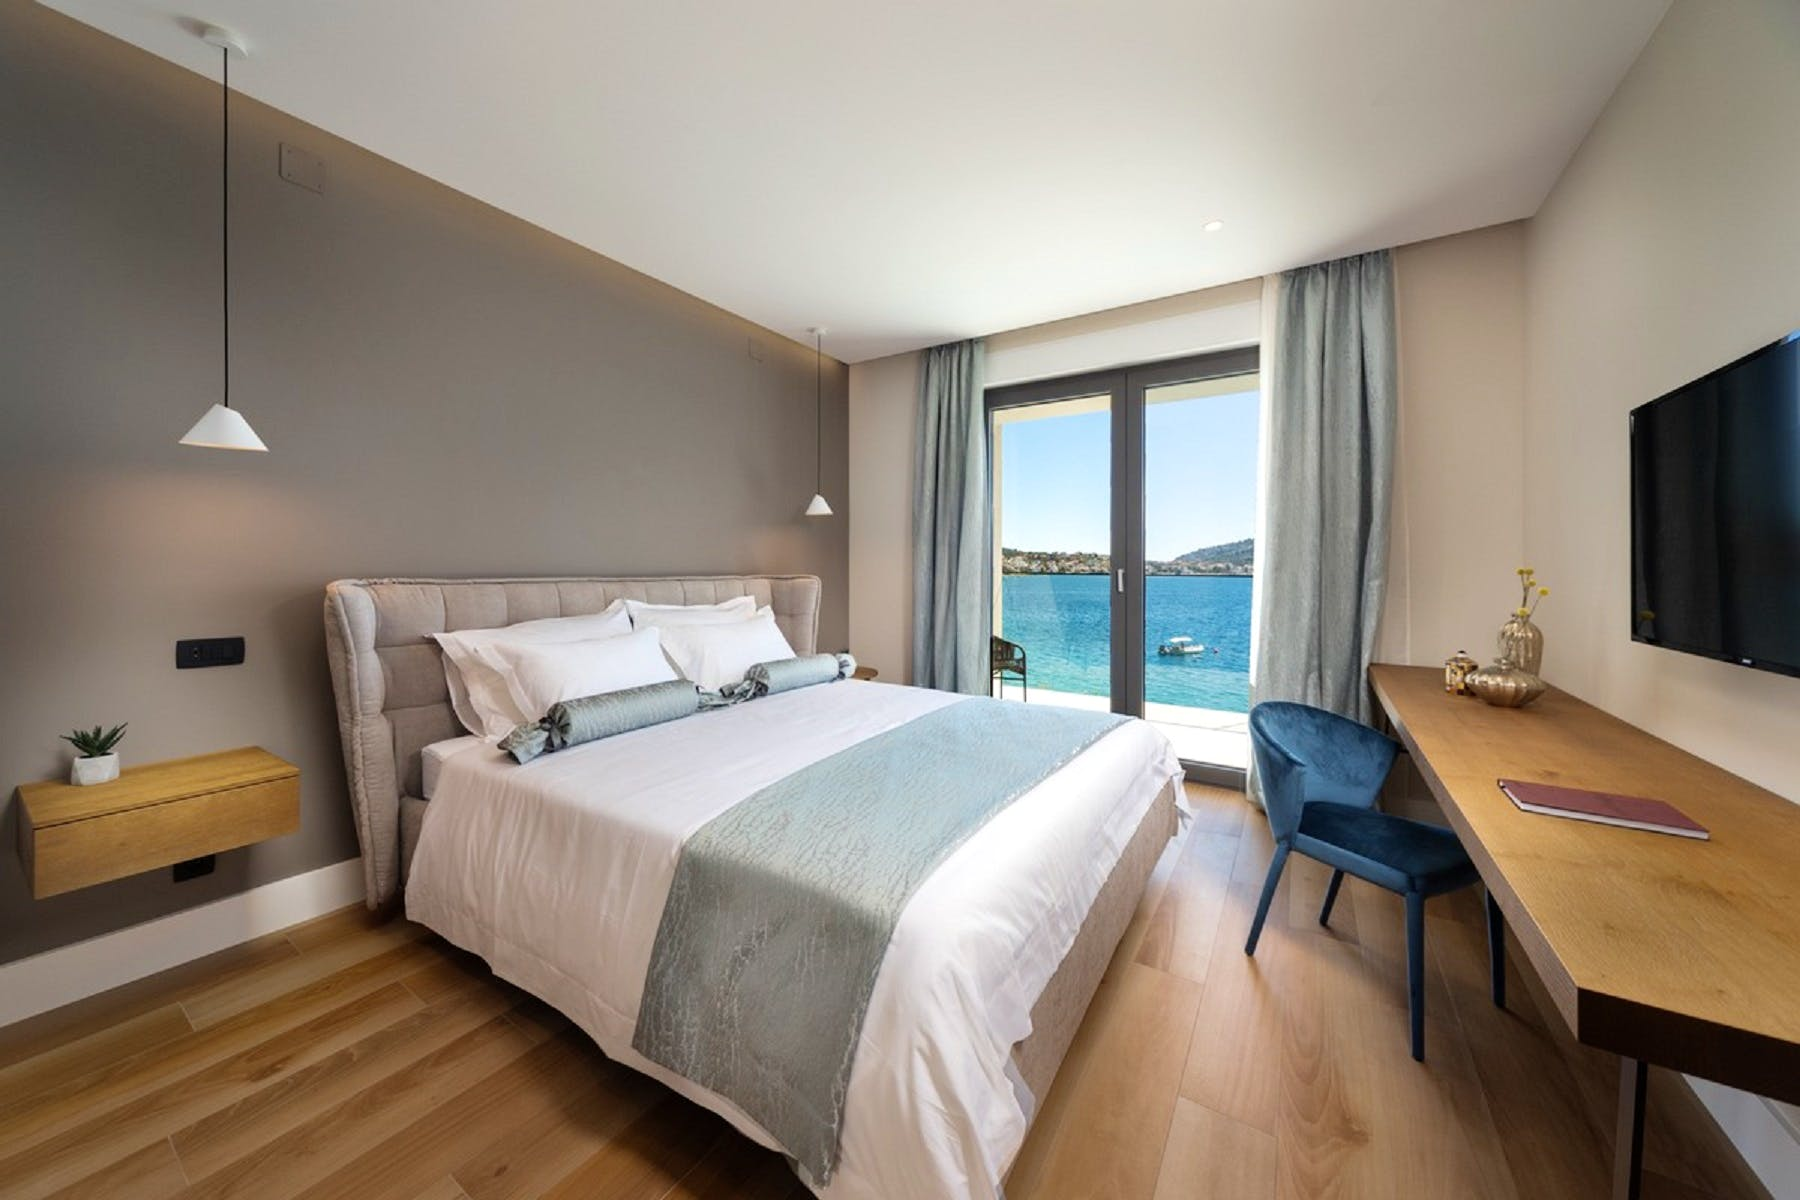 Double bedroom with a view